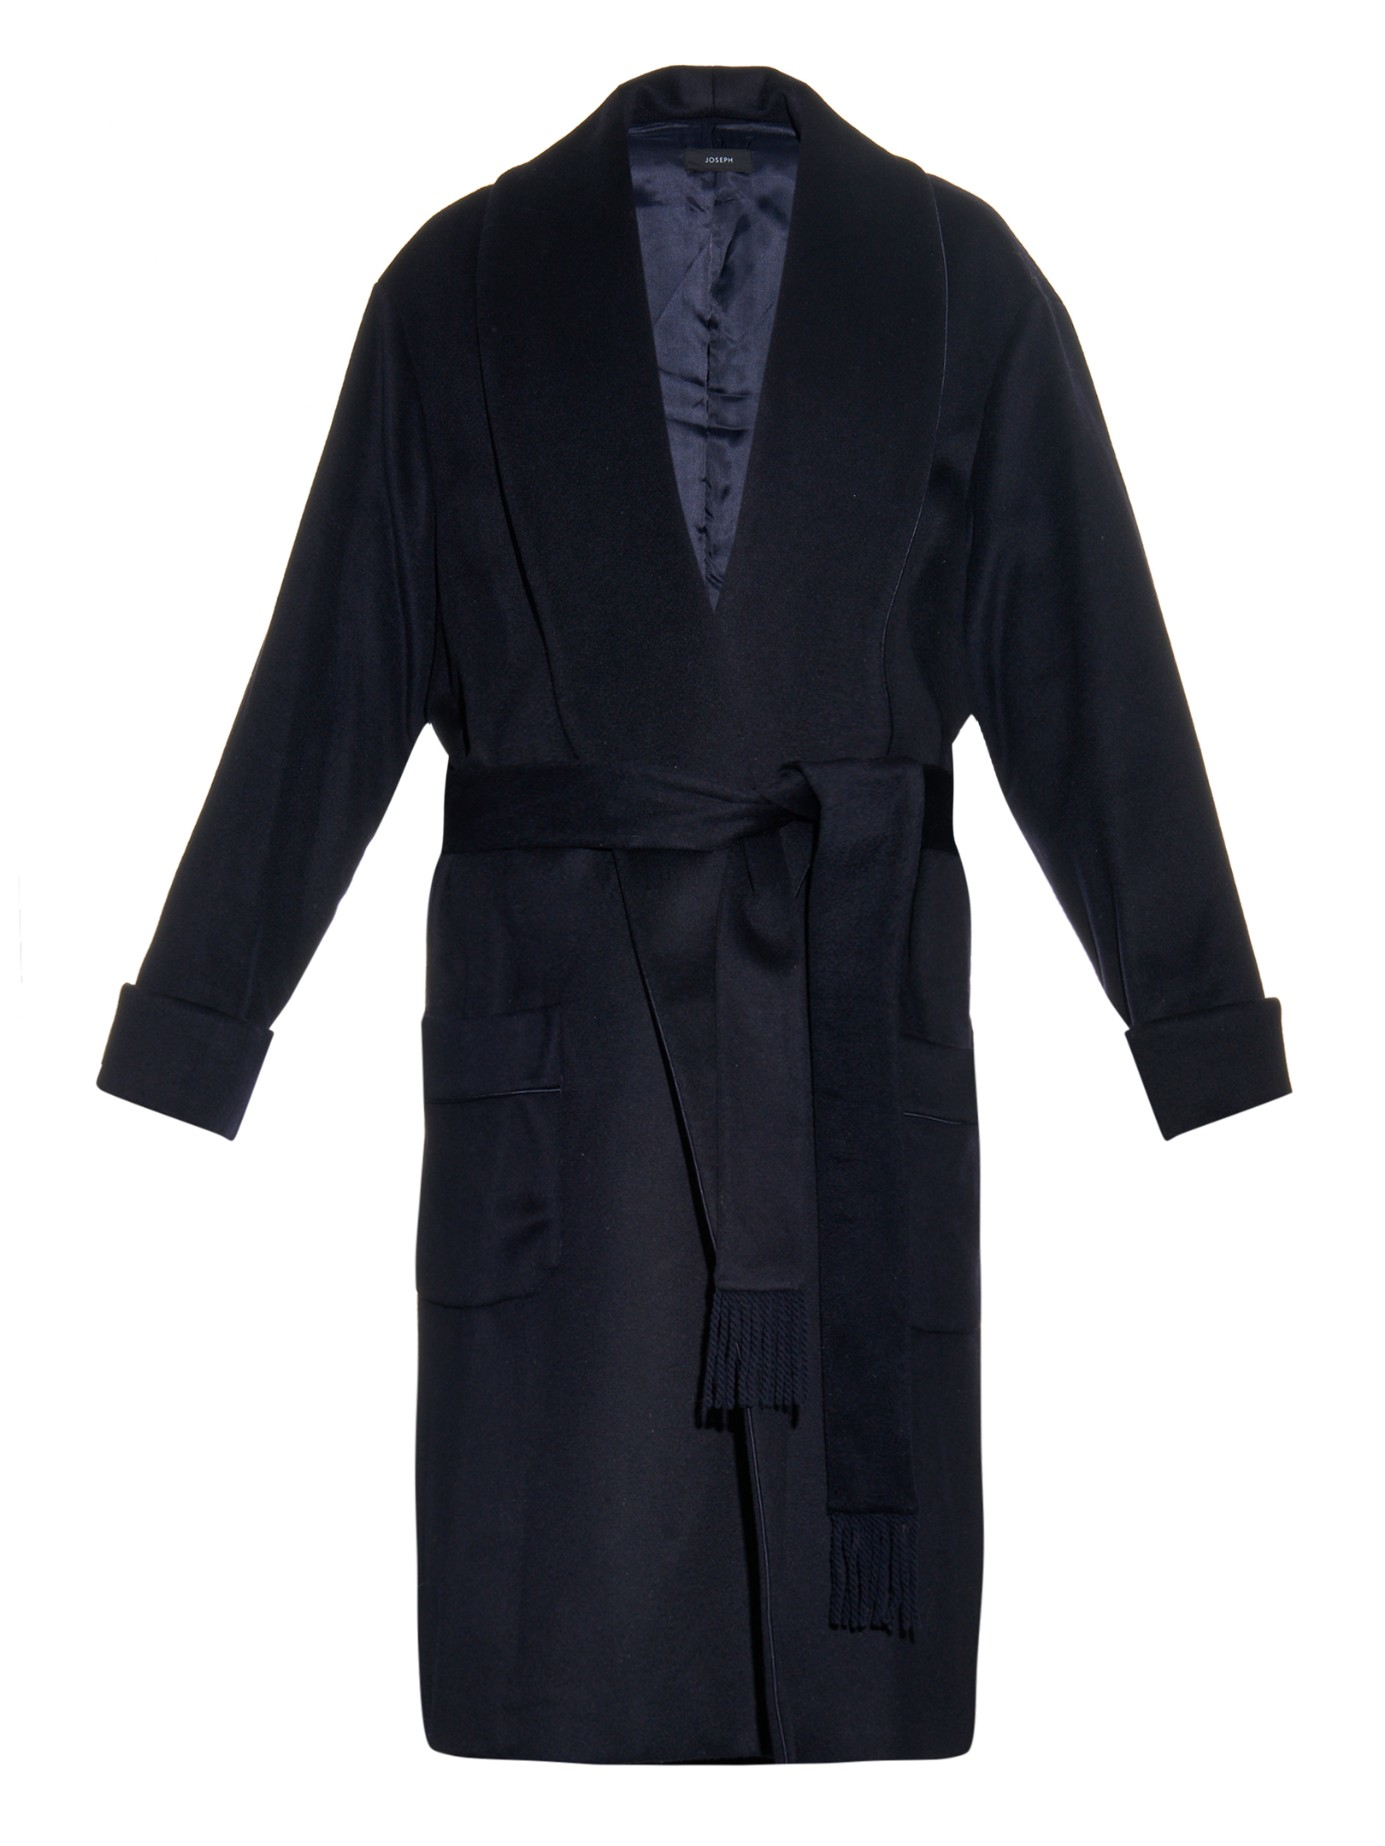 Joseph Page Wool And Cashmere-blend Coat in Blue | Lyst